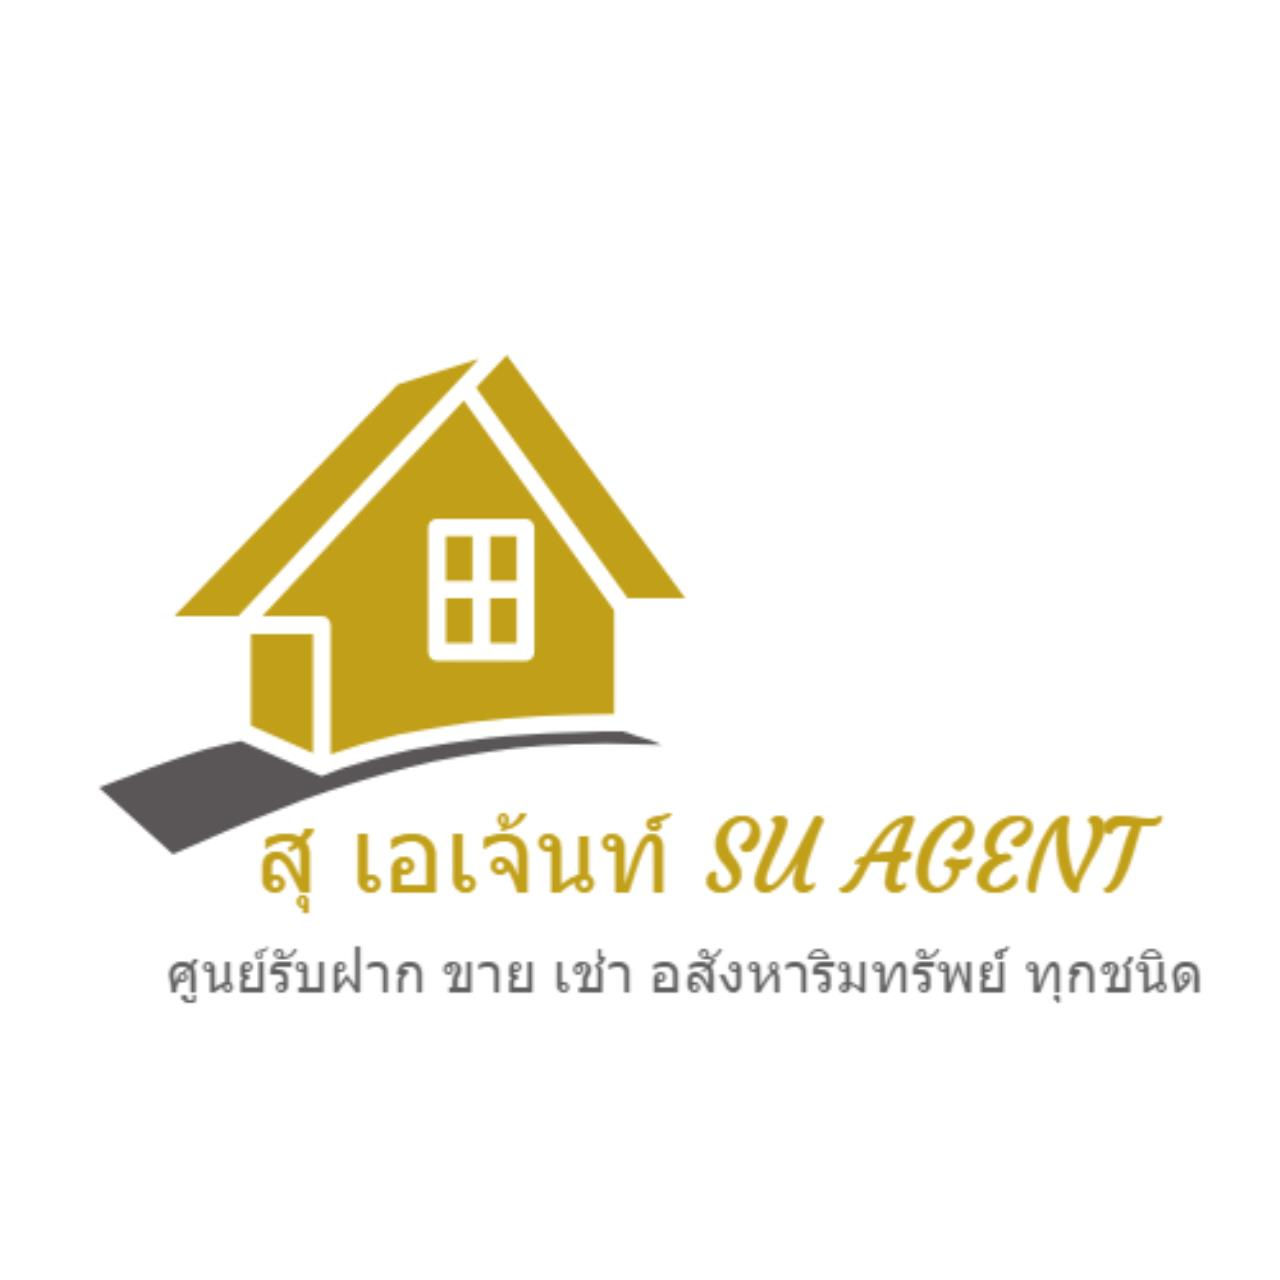 Su Agent Co.,Ltd logo